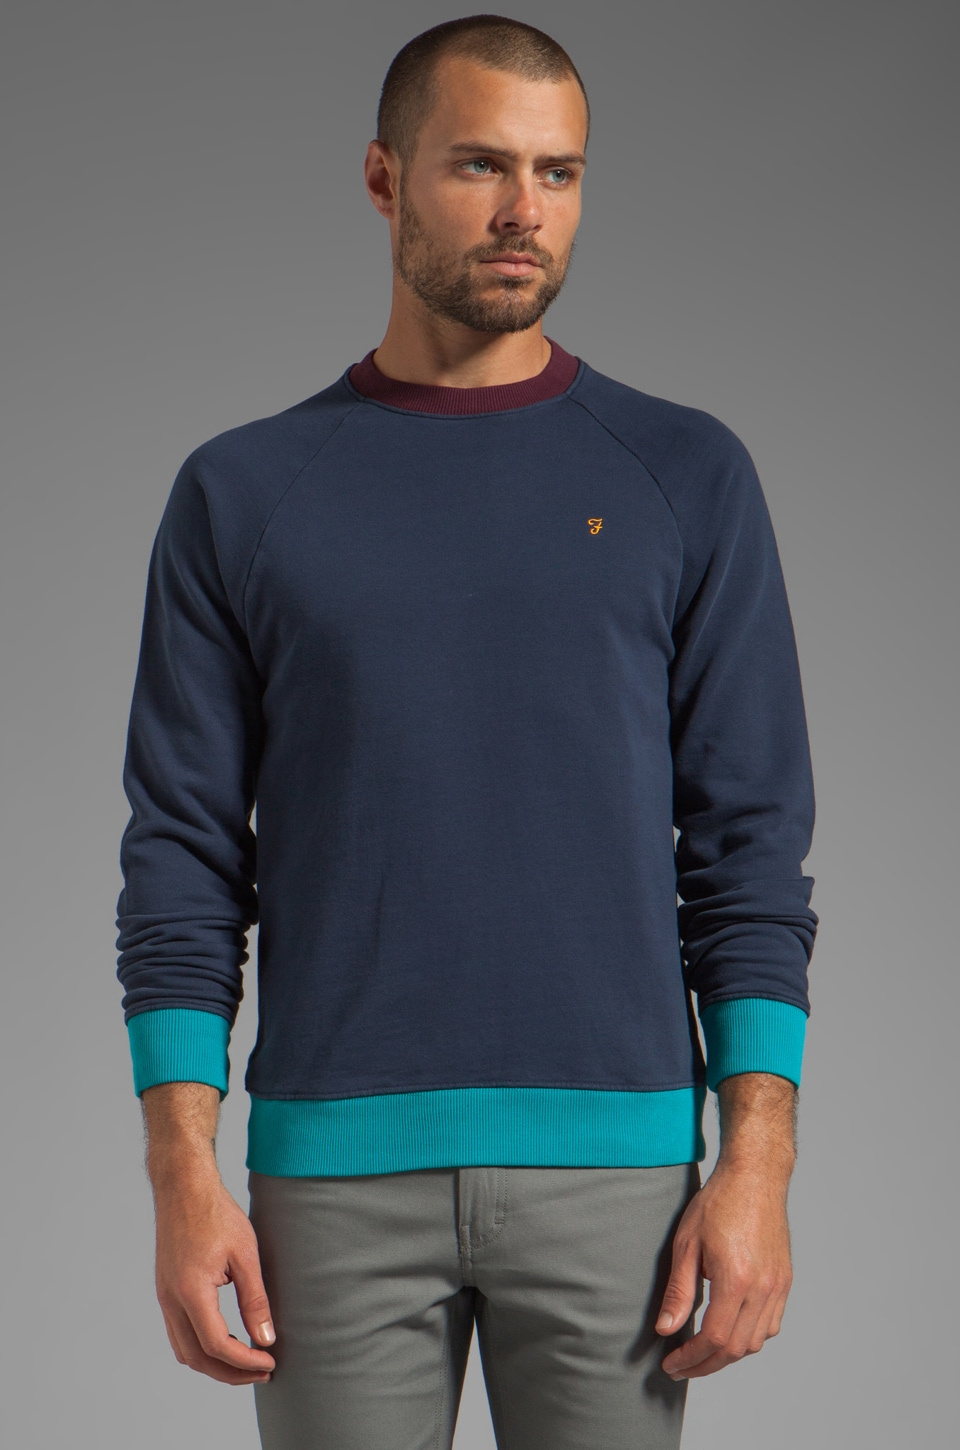 FARAH VINTAGE The Ryder Contrast Sweater in Midnight